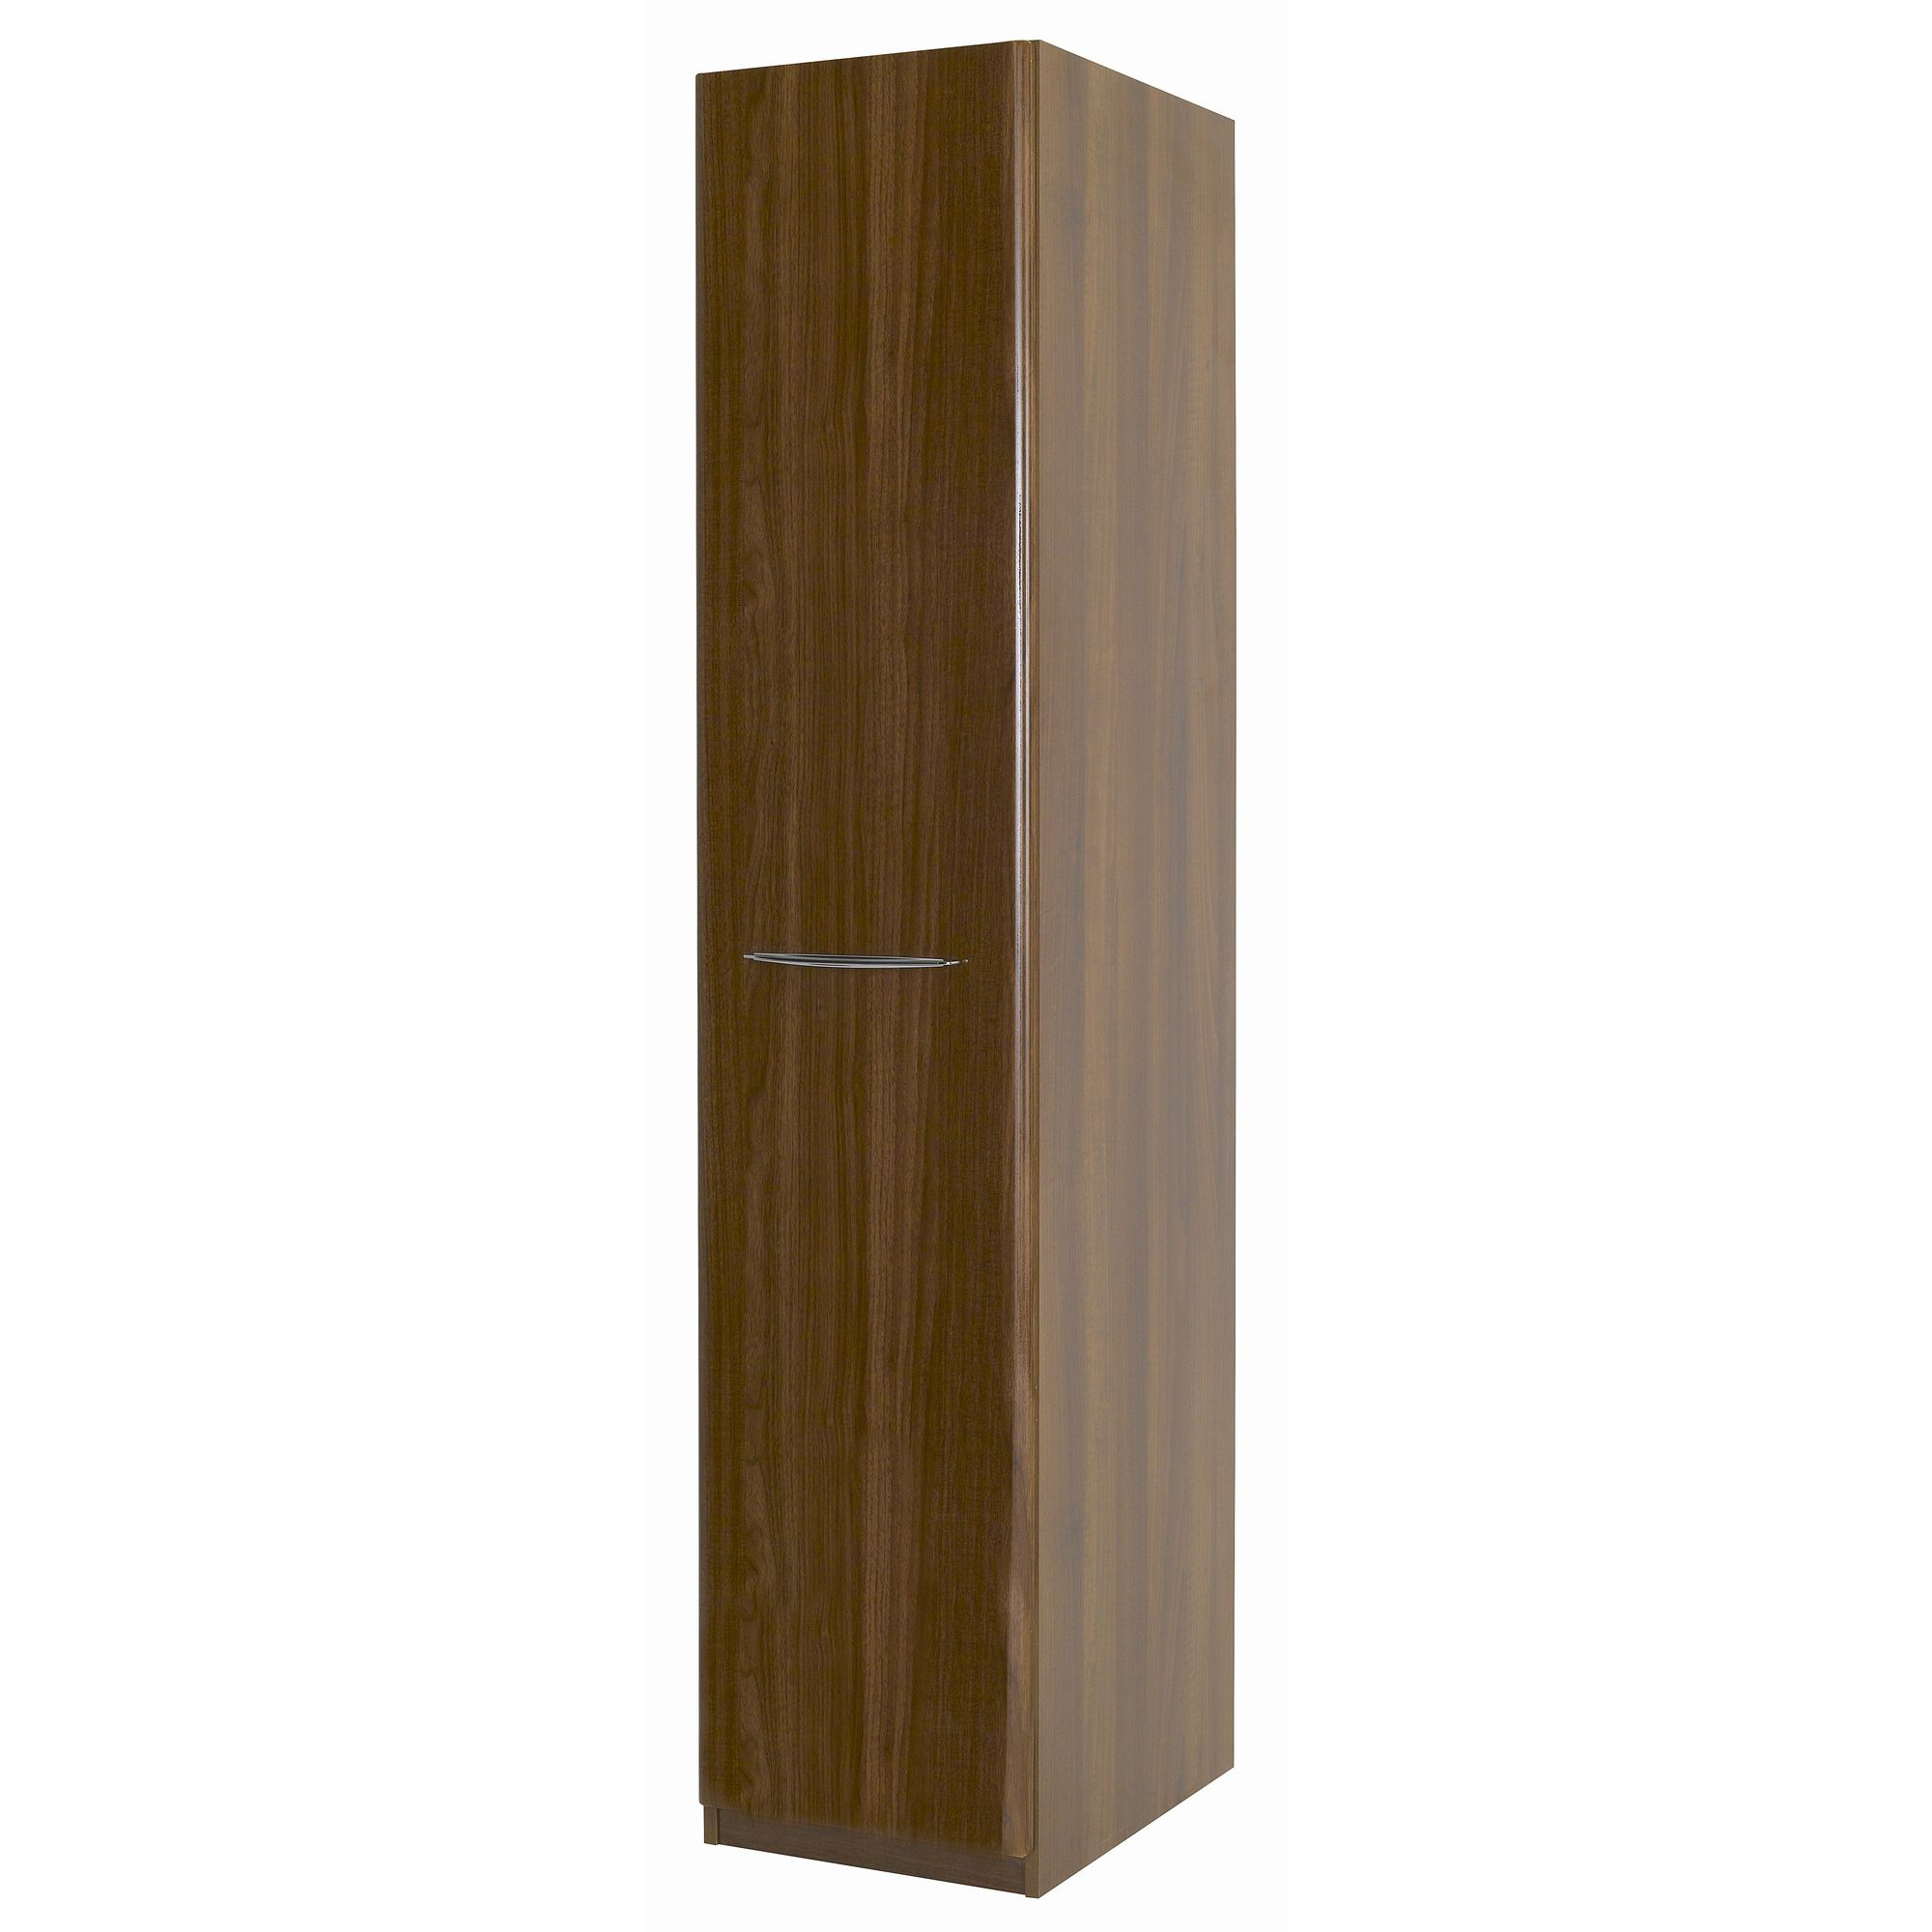 Alto Furniture Visualise Murano Single Wardrobe in High Gloss Walnut at Tesco Direct